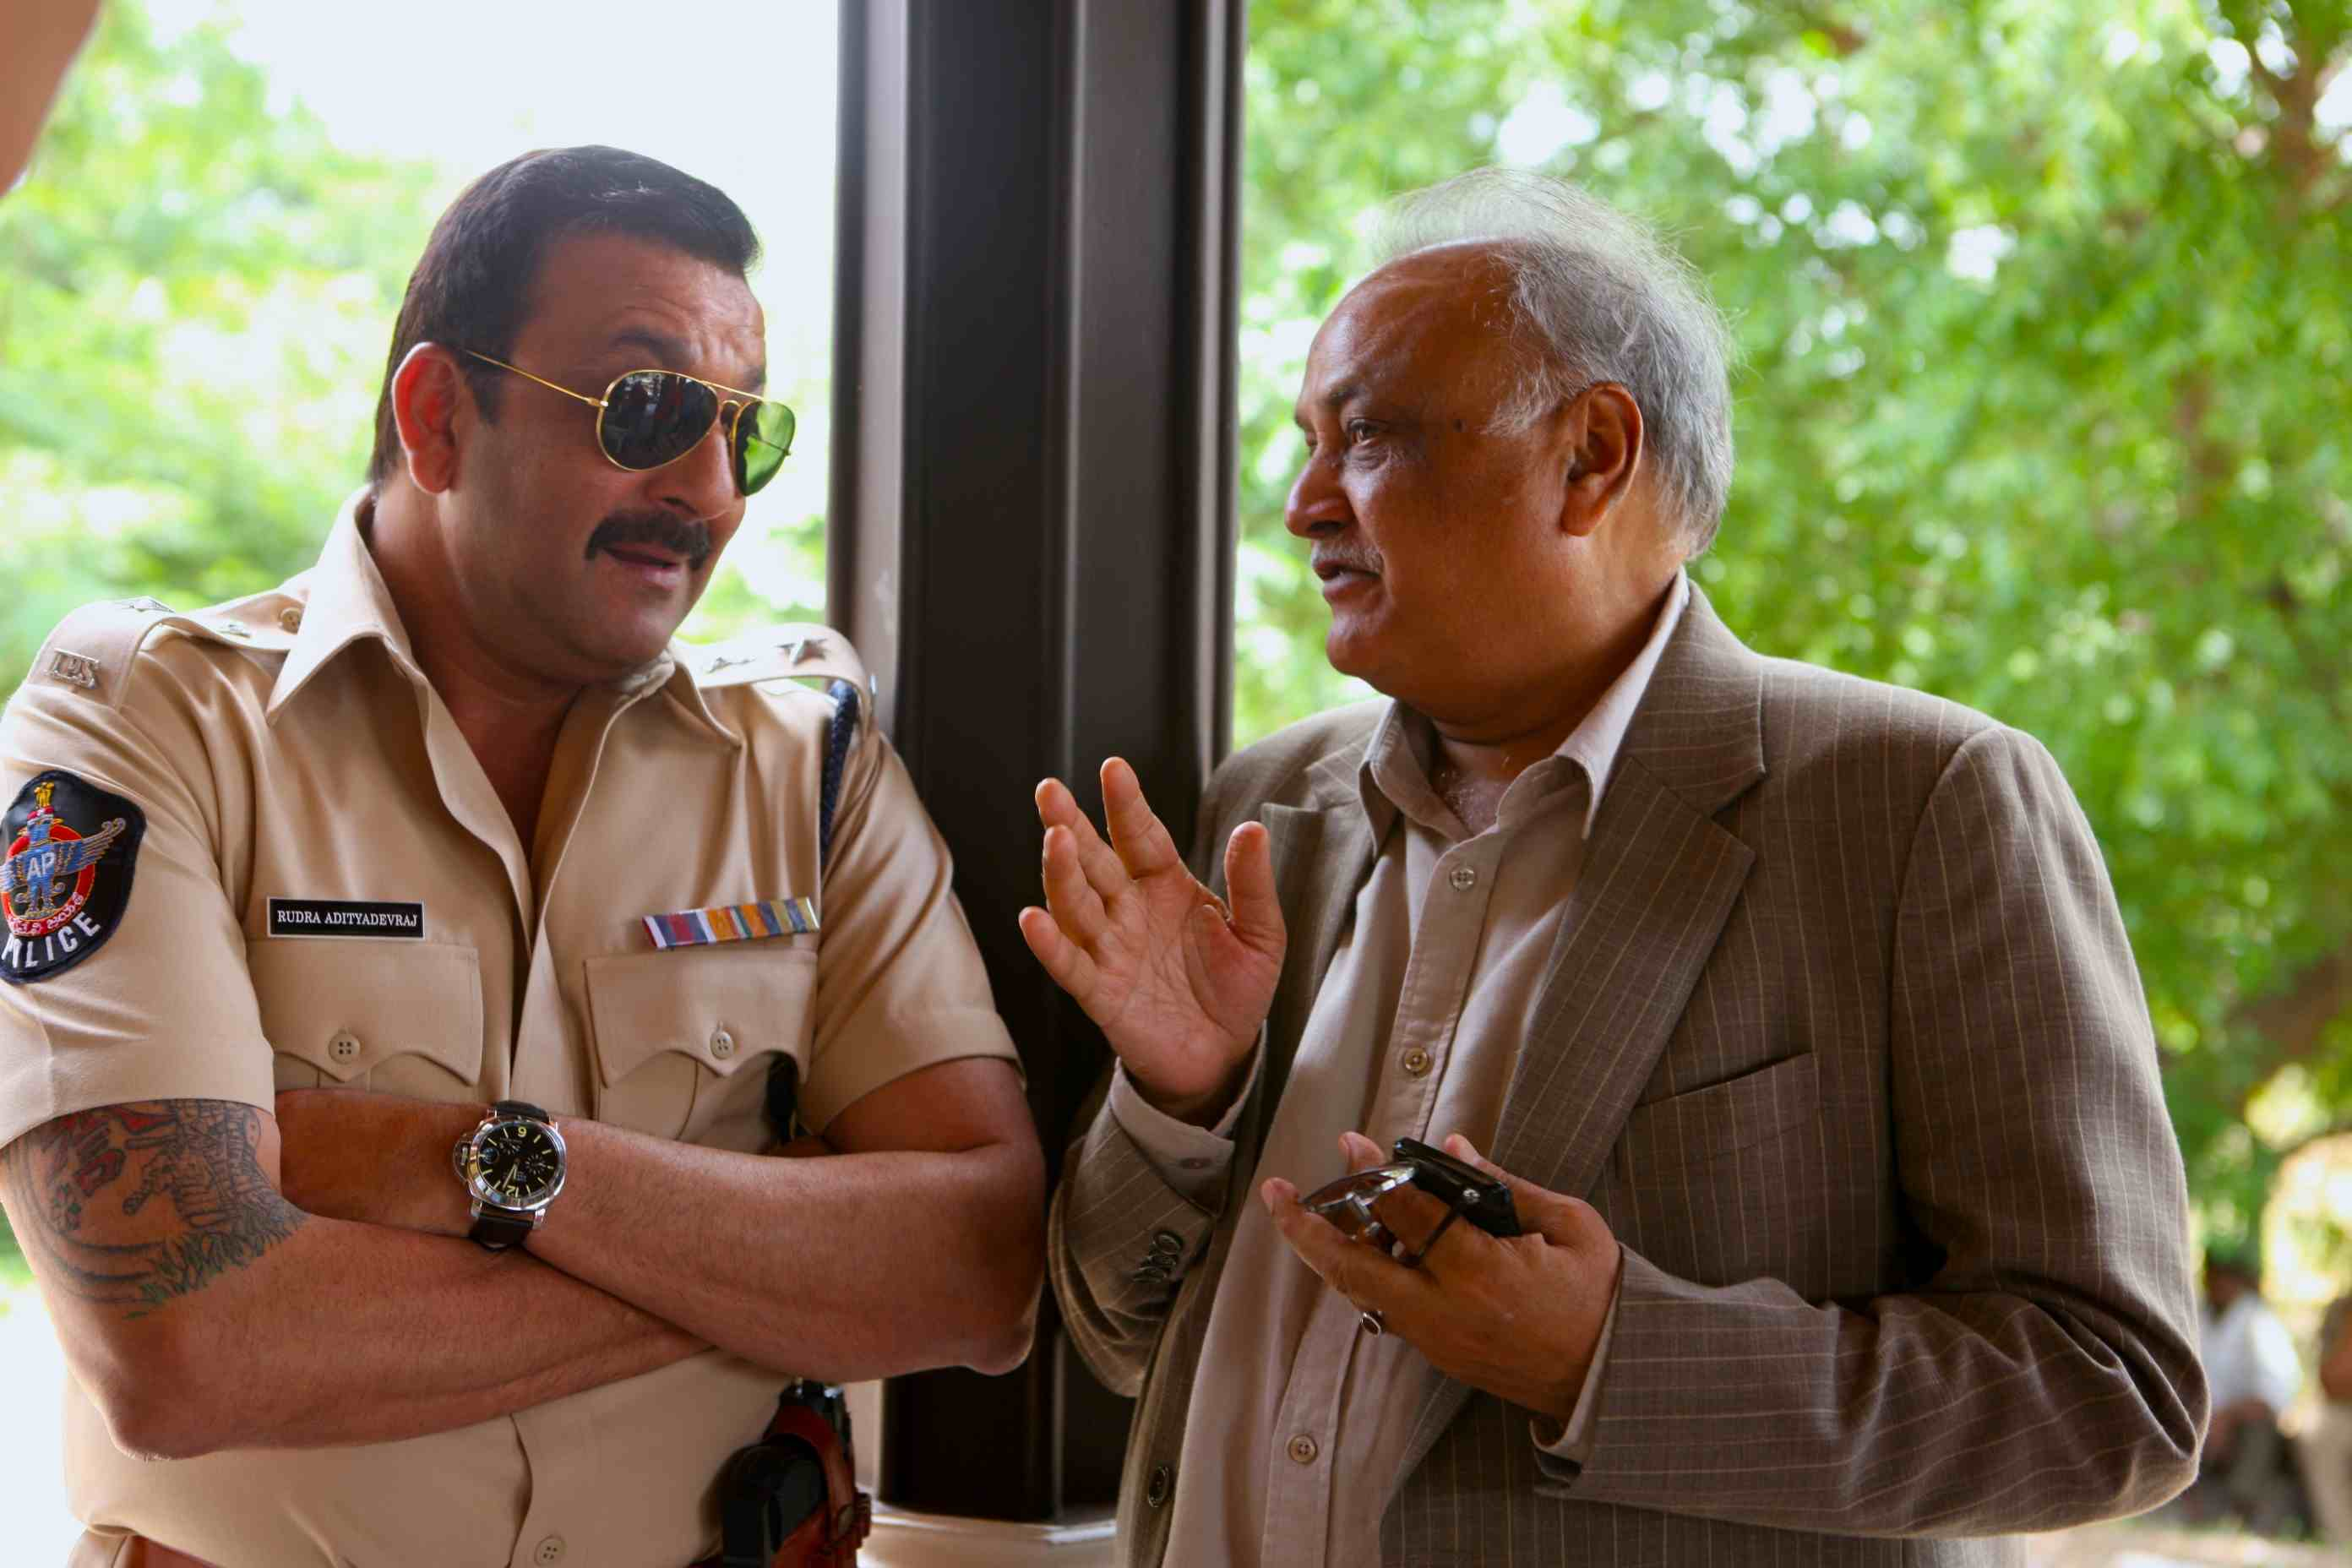 The makers of Sanjay Dutt's Policegiri have issued a statement in support of the actor, who has been sentenced to five years imprisonment in the Bombay Blasts case. Policegiri is almost complete and producers TP Agarwal and Rahul Agarwal said,